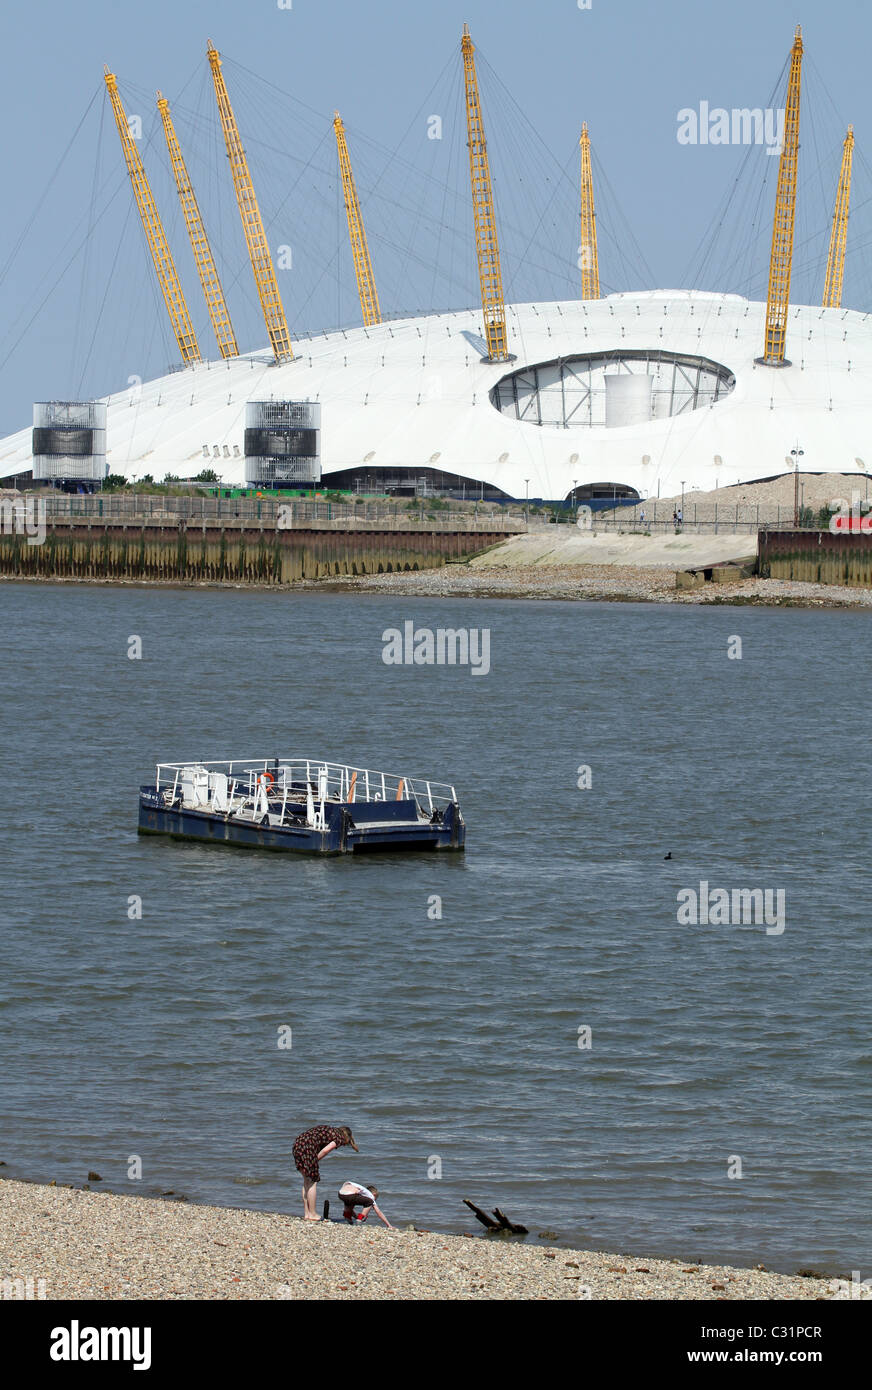 UK. RESIDENTS OF THE ISLE OF DOGS  BY THE THAMES IN LONDON ENJOY SUNSHINE, WITH MILLENNIUM DOME IN BACKGROUND - Stock Image